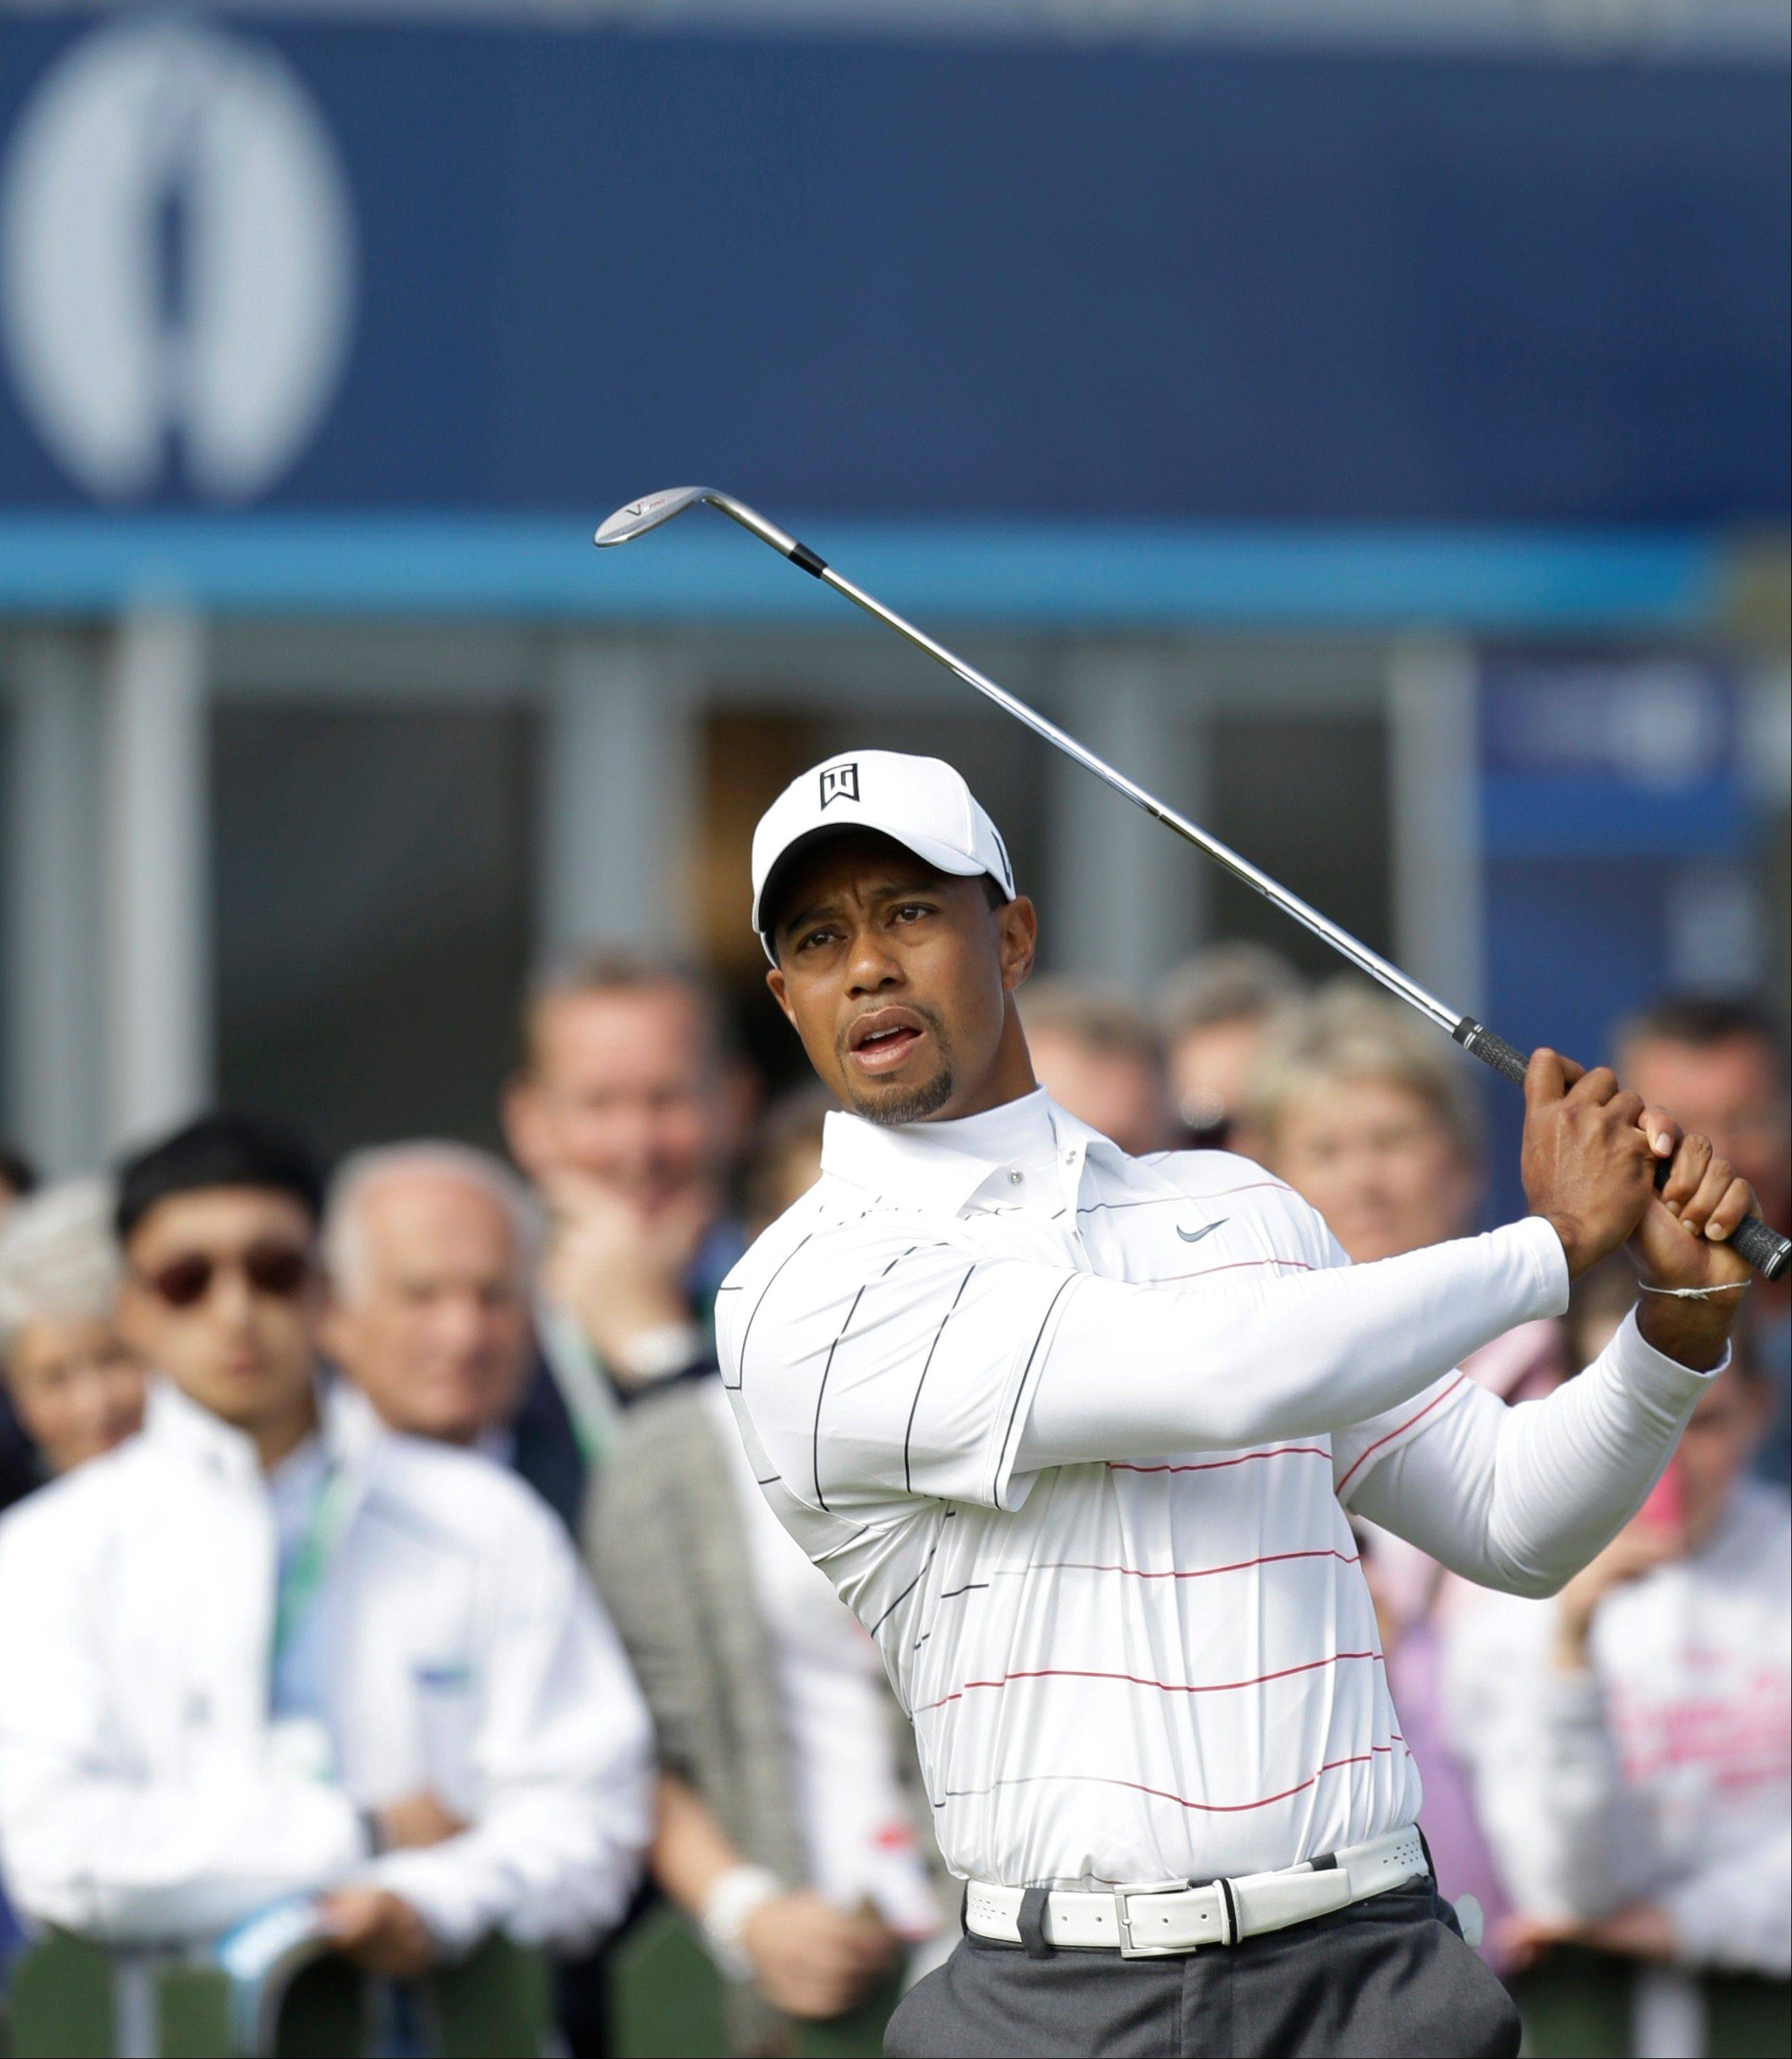 Tiger Woods won't be the only one using an iron off the tee when the British Open commences Thursday at Royal Lytham & St. Annes in England. A plethora of pot bunkers and the ever-present winds will put tee shots at a premium.